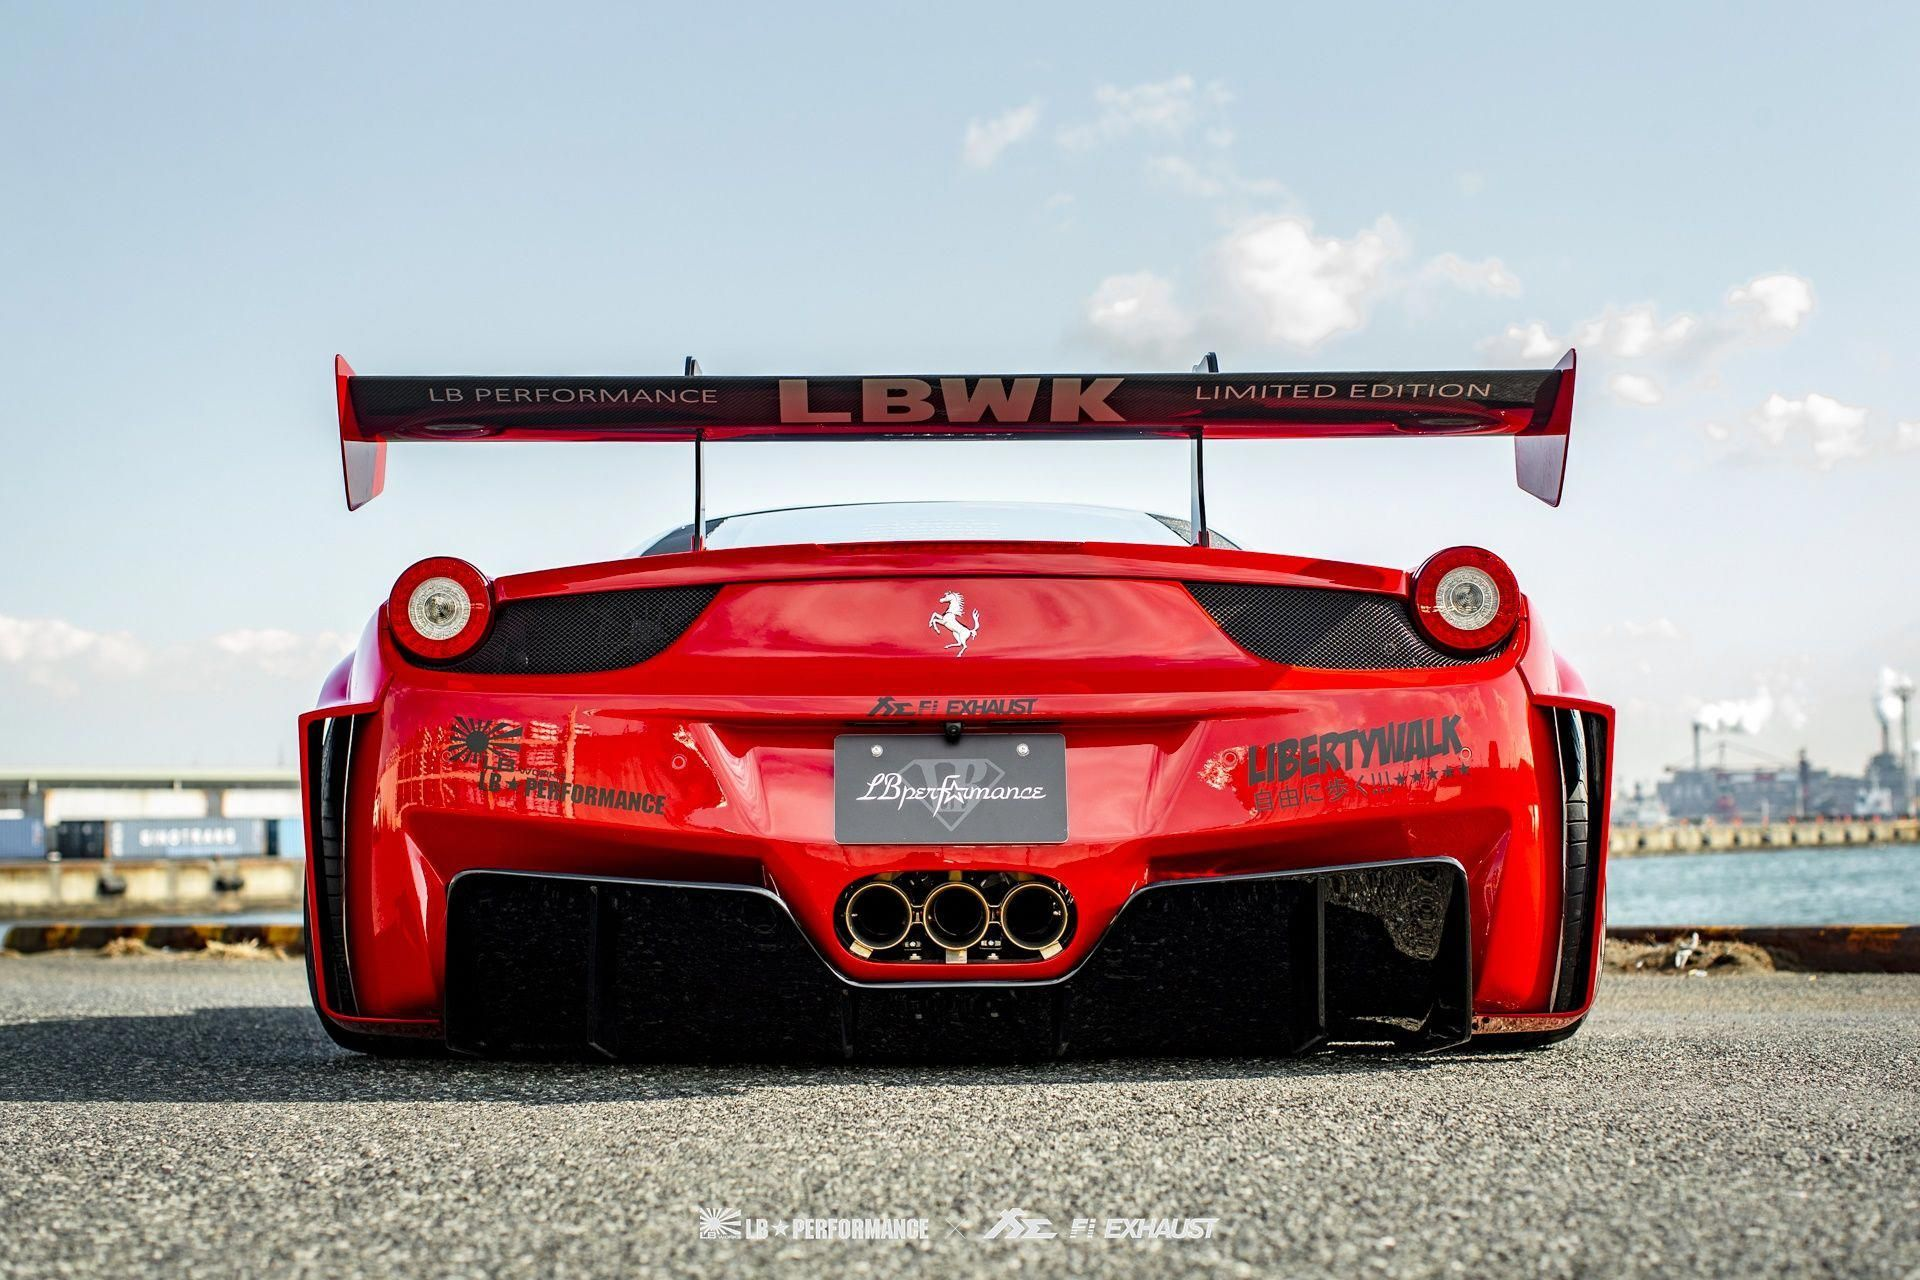 Experience The High Pitch Supercar Sound With Fi Exhaust For More Information Email Info Fi Exhaust Com Thank You Liberty Walk X Wataru Ka Ferrari Ferrari 458 Ferrari 458 Italia Spider